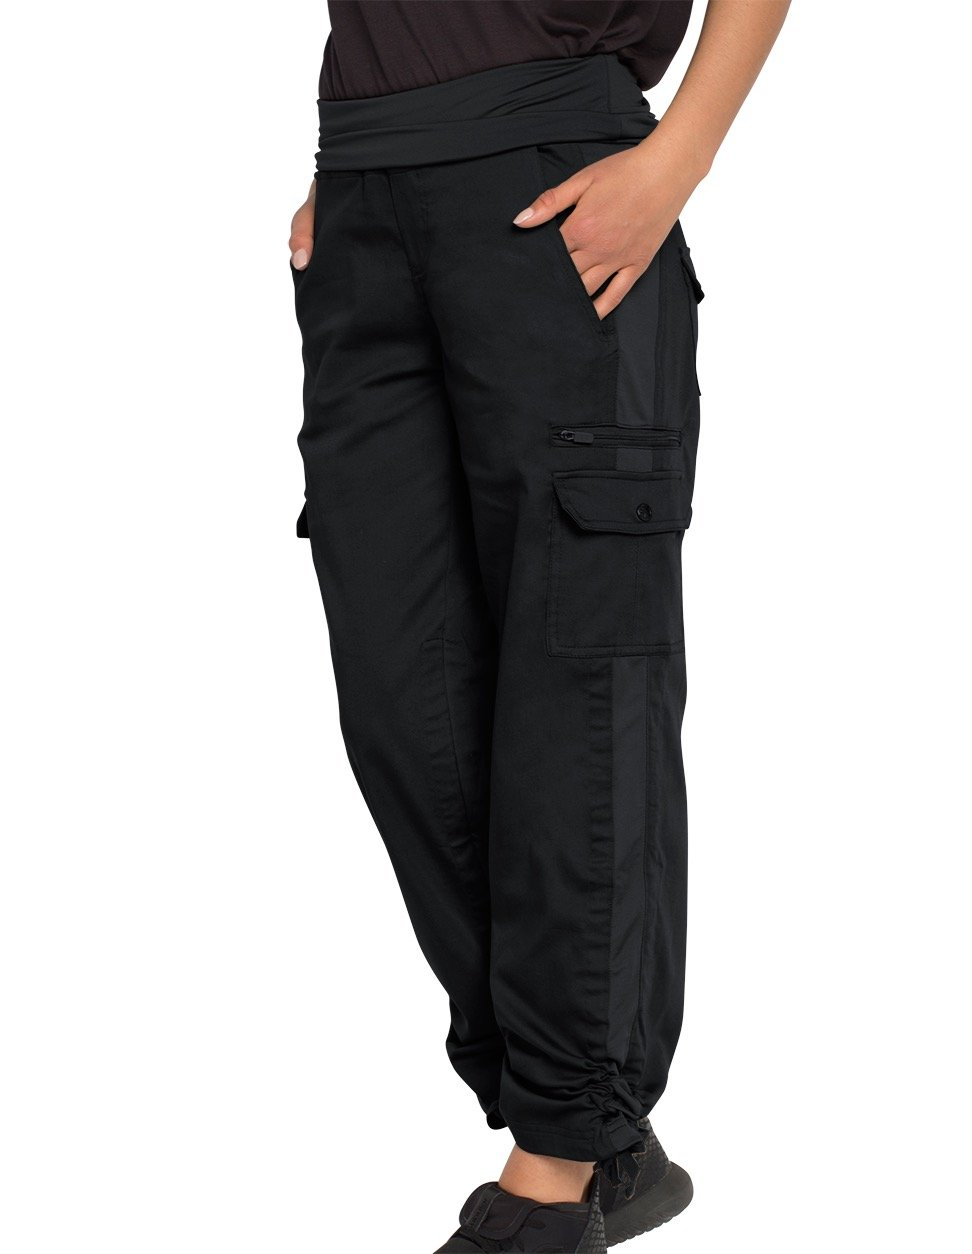 SCOTTeVEST Margaux Cargaux Travel Pants -11 Pockets- Travel Cargo Pants BLK L